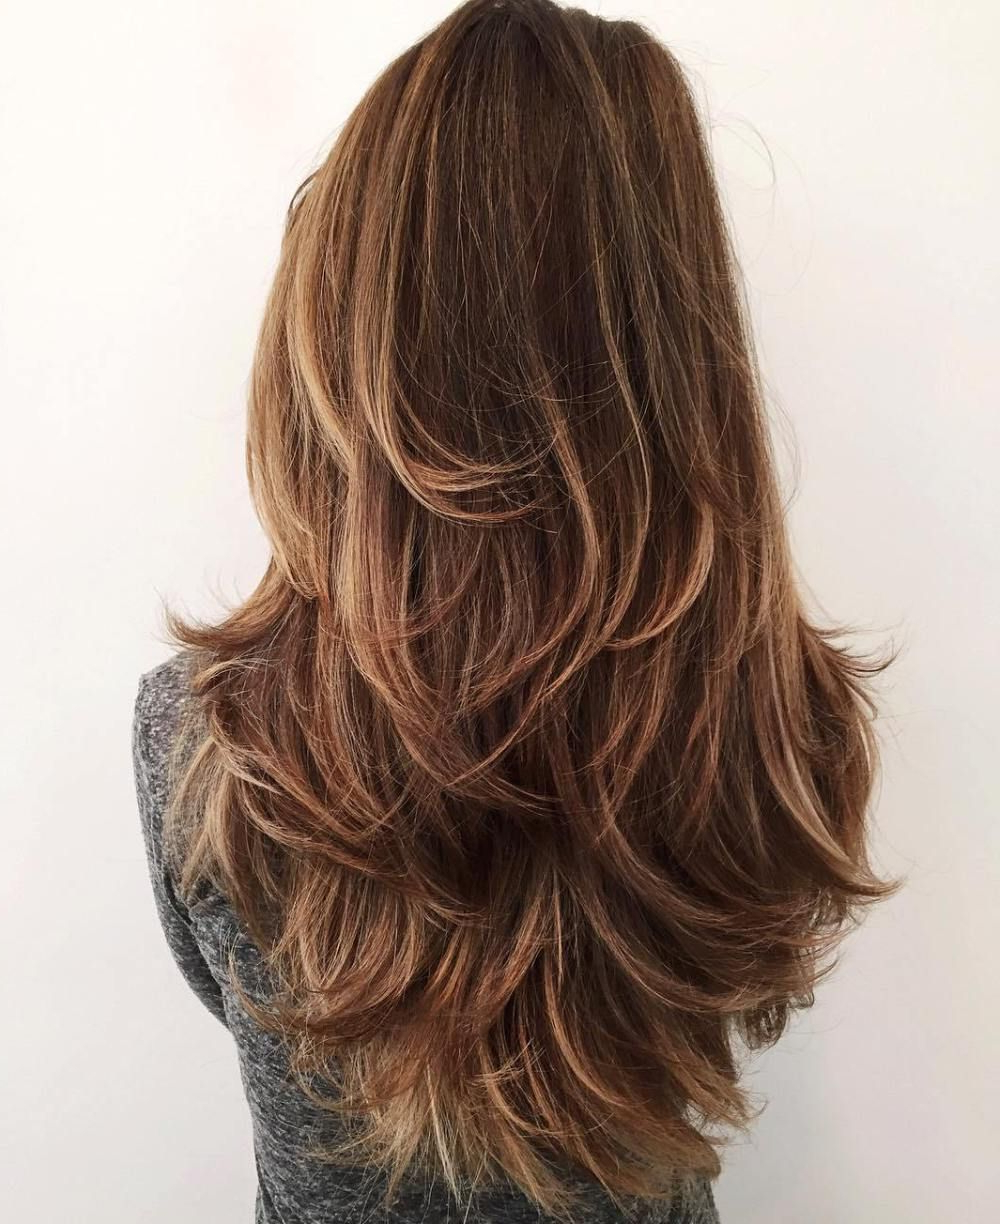 50 Lovely Long Shag Haircuts For Effortless Stylish Looks In 2018 In V Shaped Layered Short Haircuts (View 12 of 25)